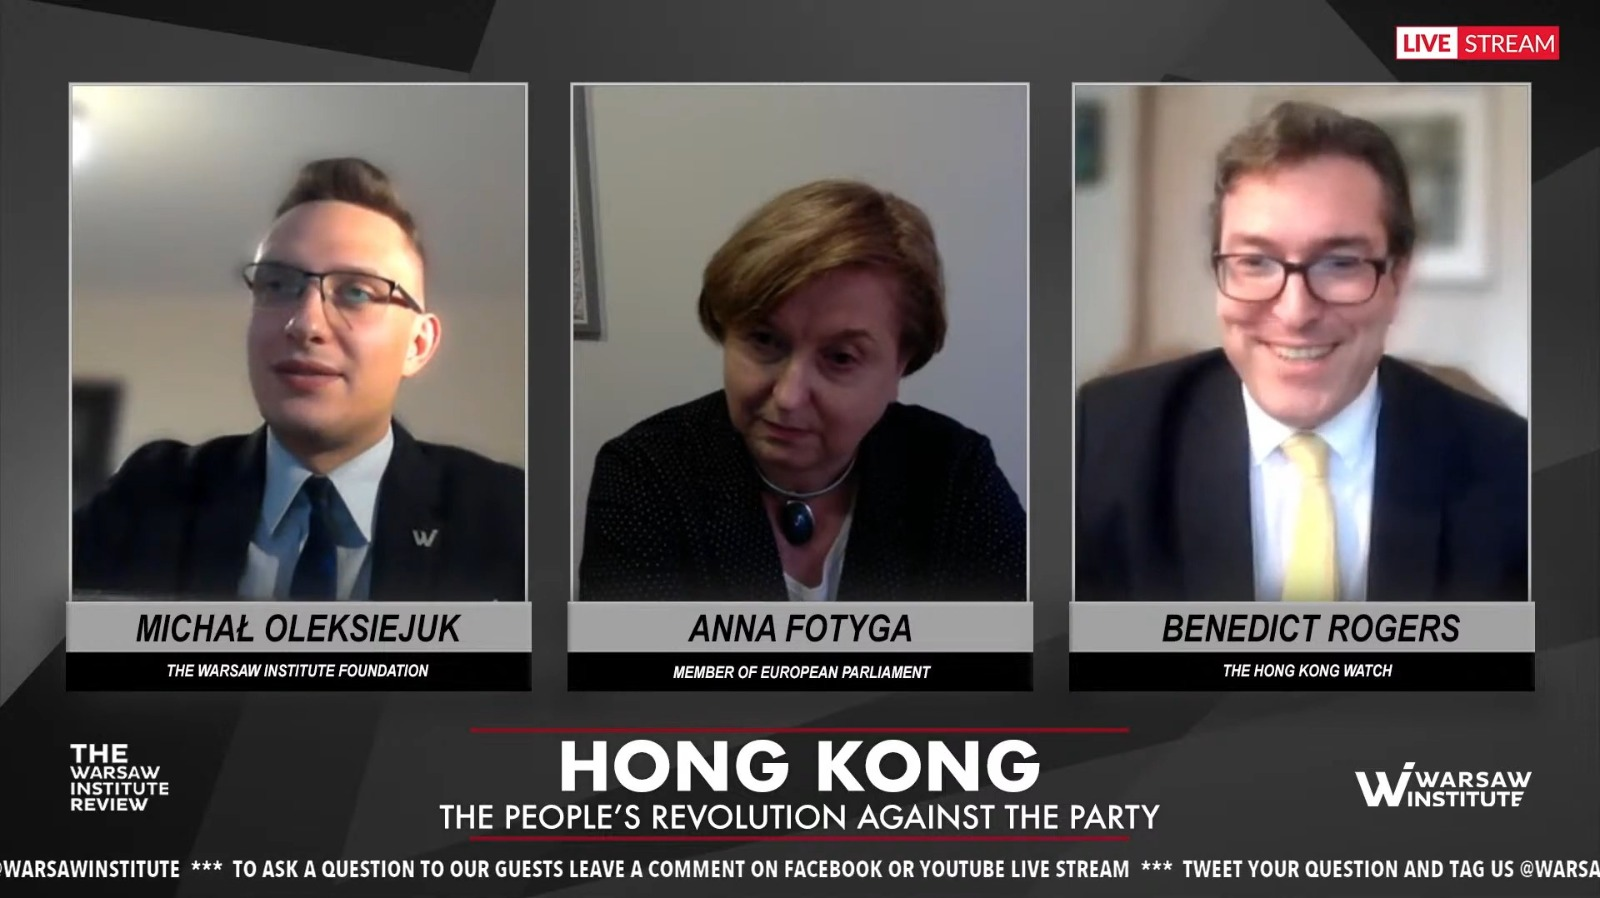 Summary: Hong Kong – the people's revolution against the Party